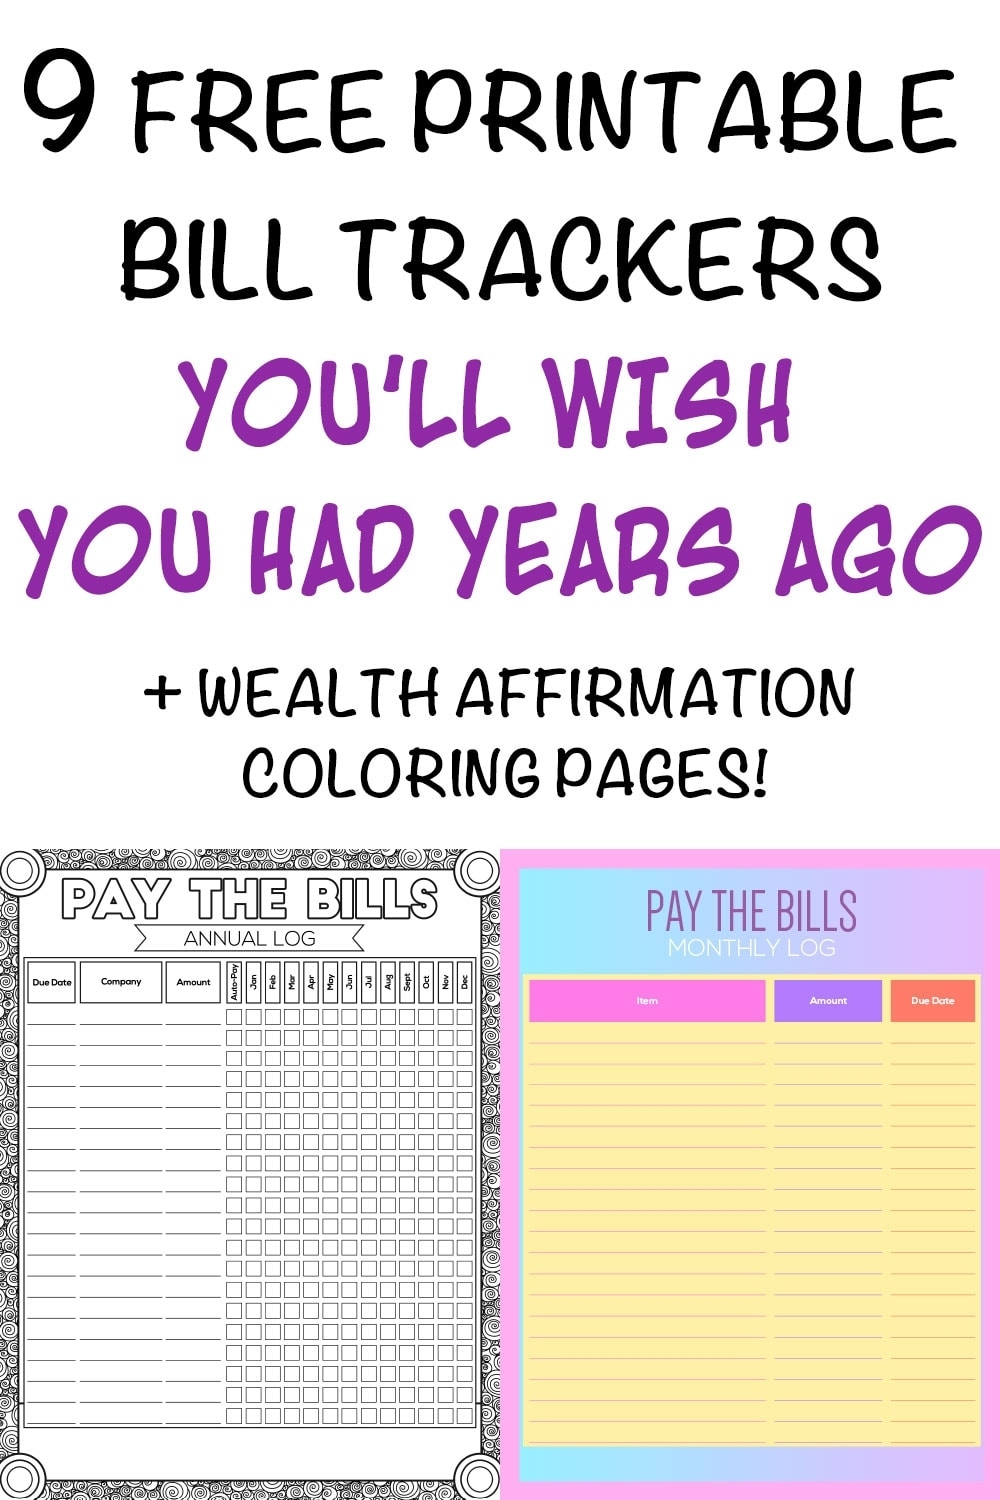 9 Printable Bill Payment Checklists And Bill Trackers - The Artisan Life pertaining to Free Bill Organizer Printable Sheets